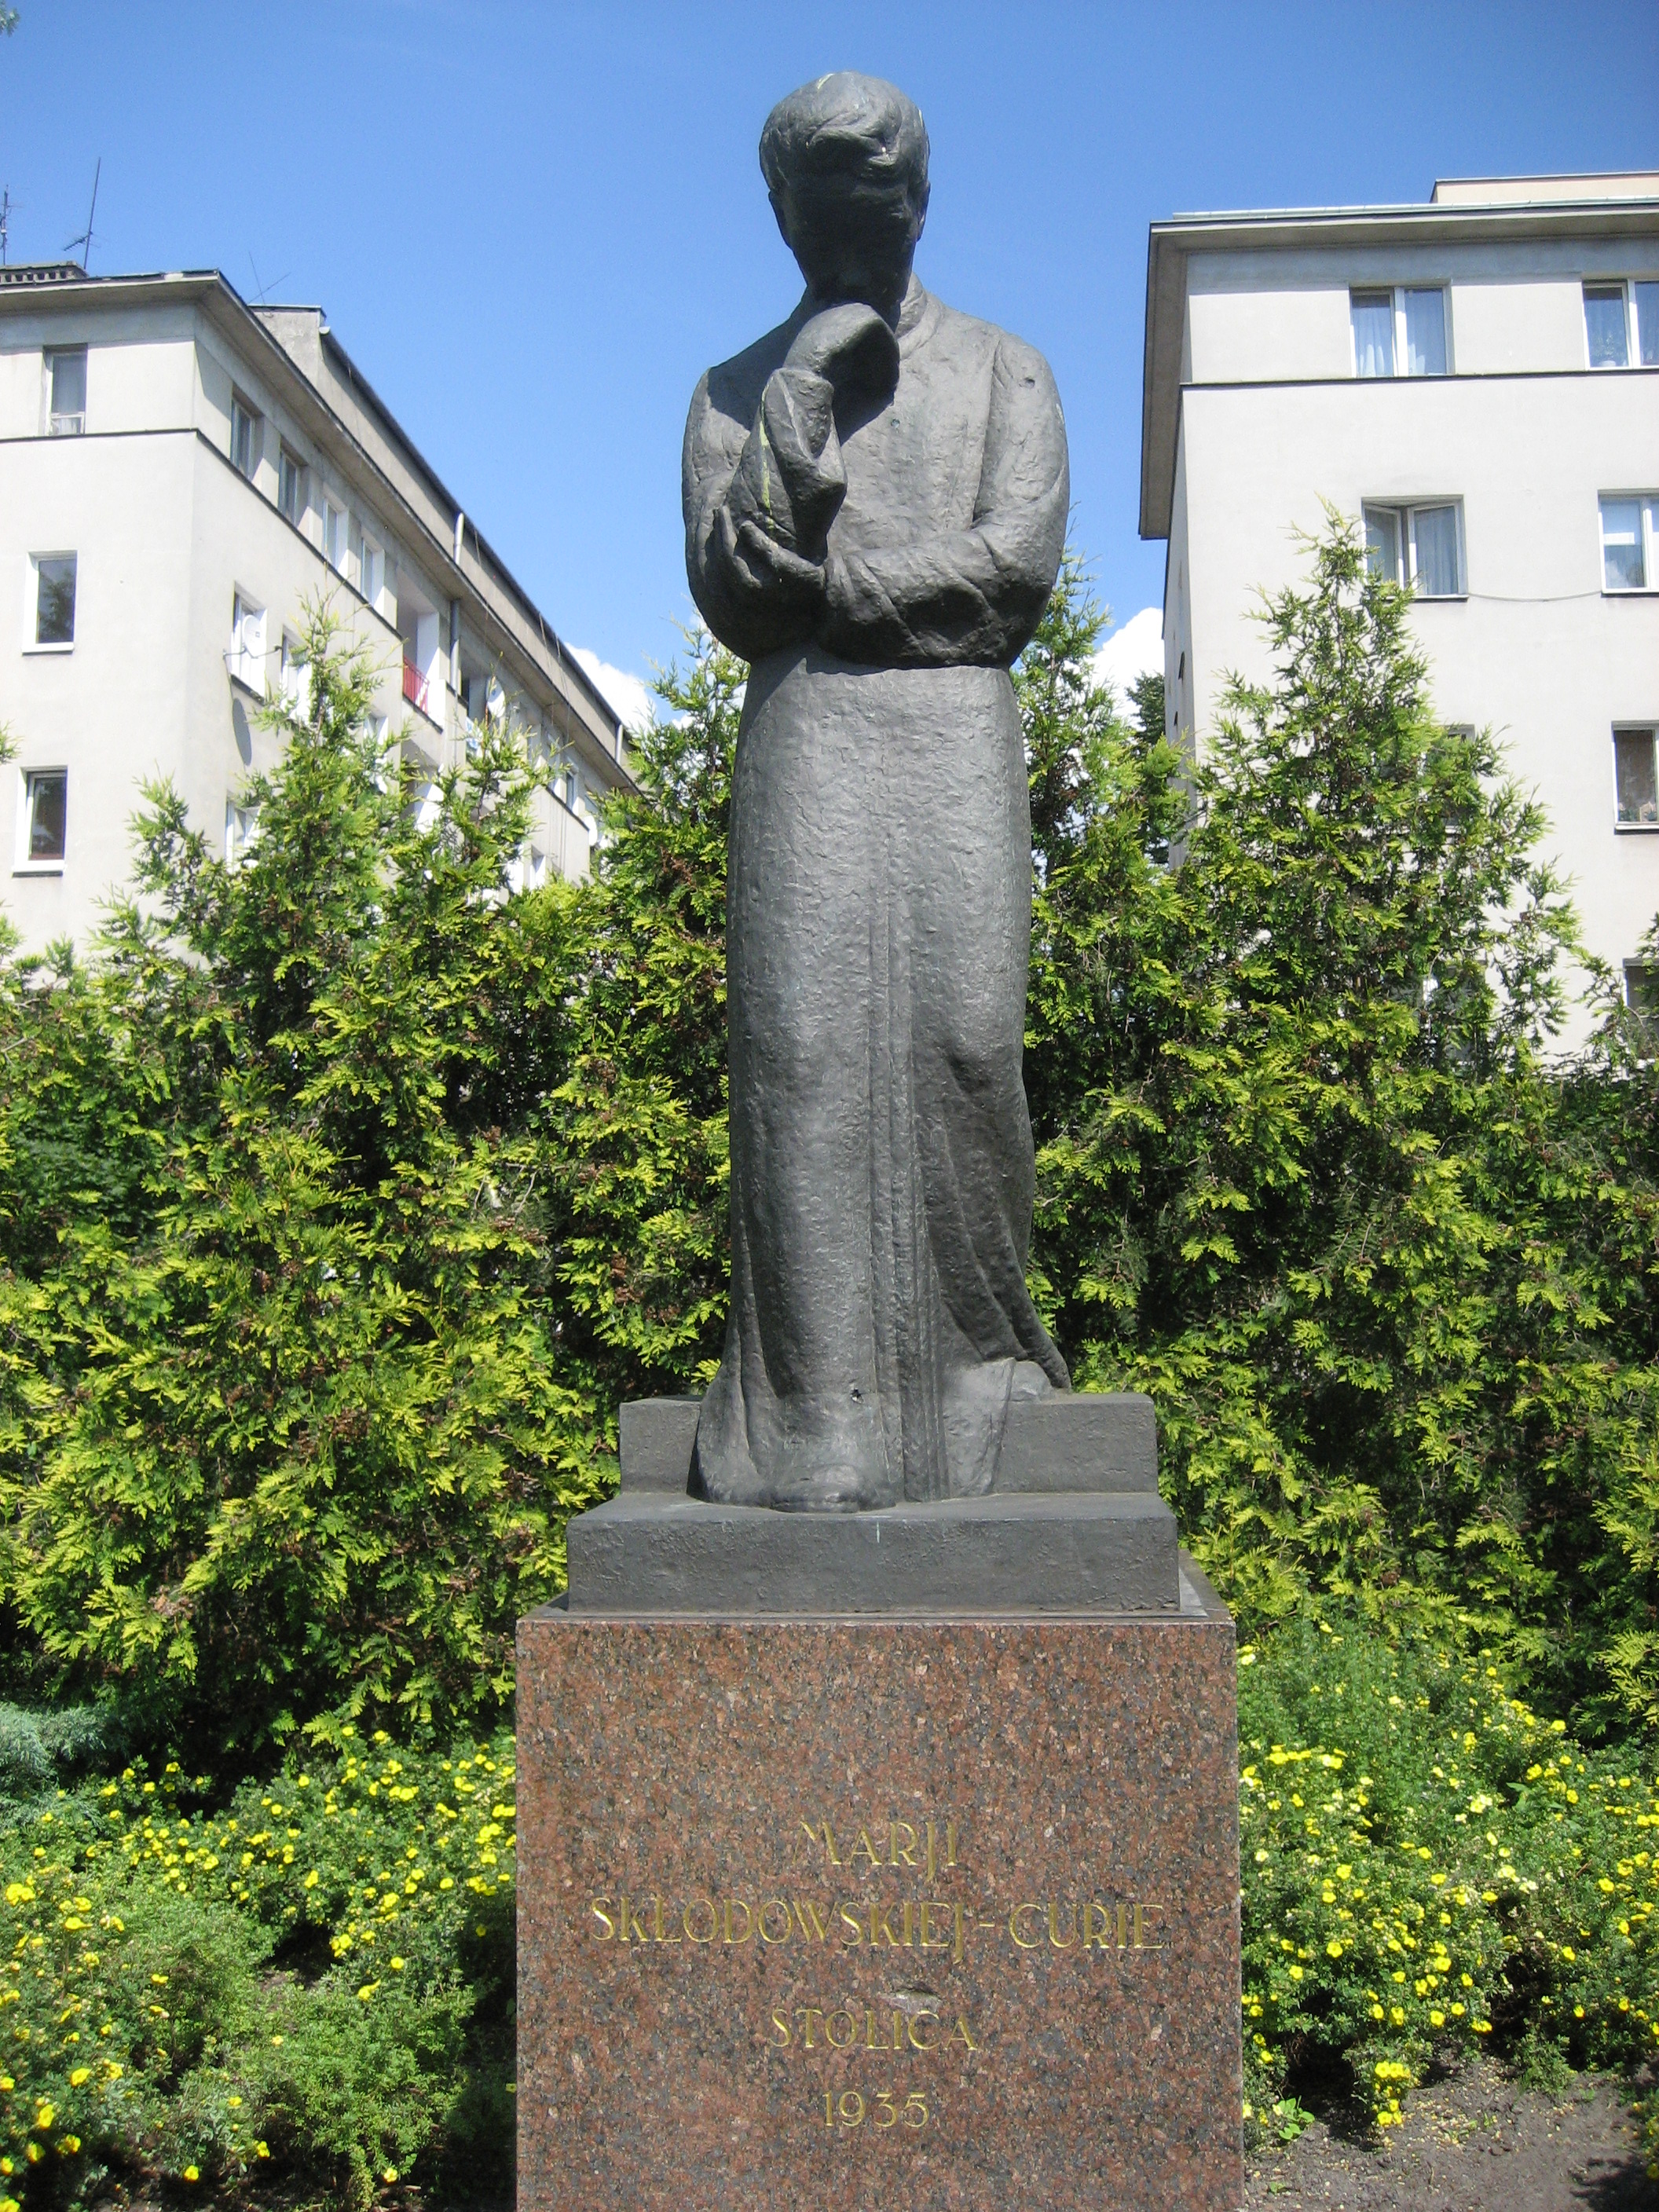 a description of marie sklodowska born in warsaw in 1867 Marie sklodowska-curie, also known as marie curie (warsaw, 1867-passy, 1934), polish and naturalized-french physicist and chemist nobel prize in physics in 1903 and in chemistry in 1911 de agostini picture library / getty images marie curie is best known for discovering radium, yet she achieved .